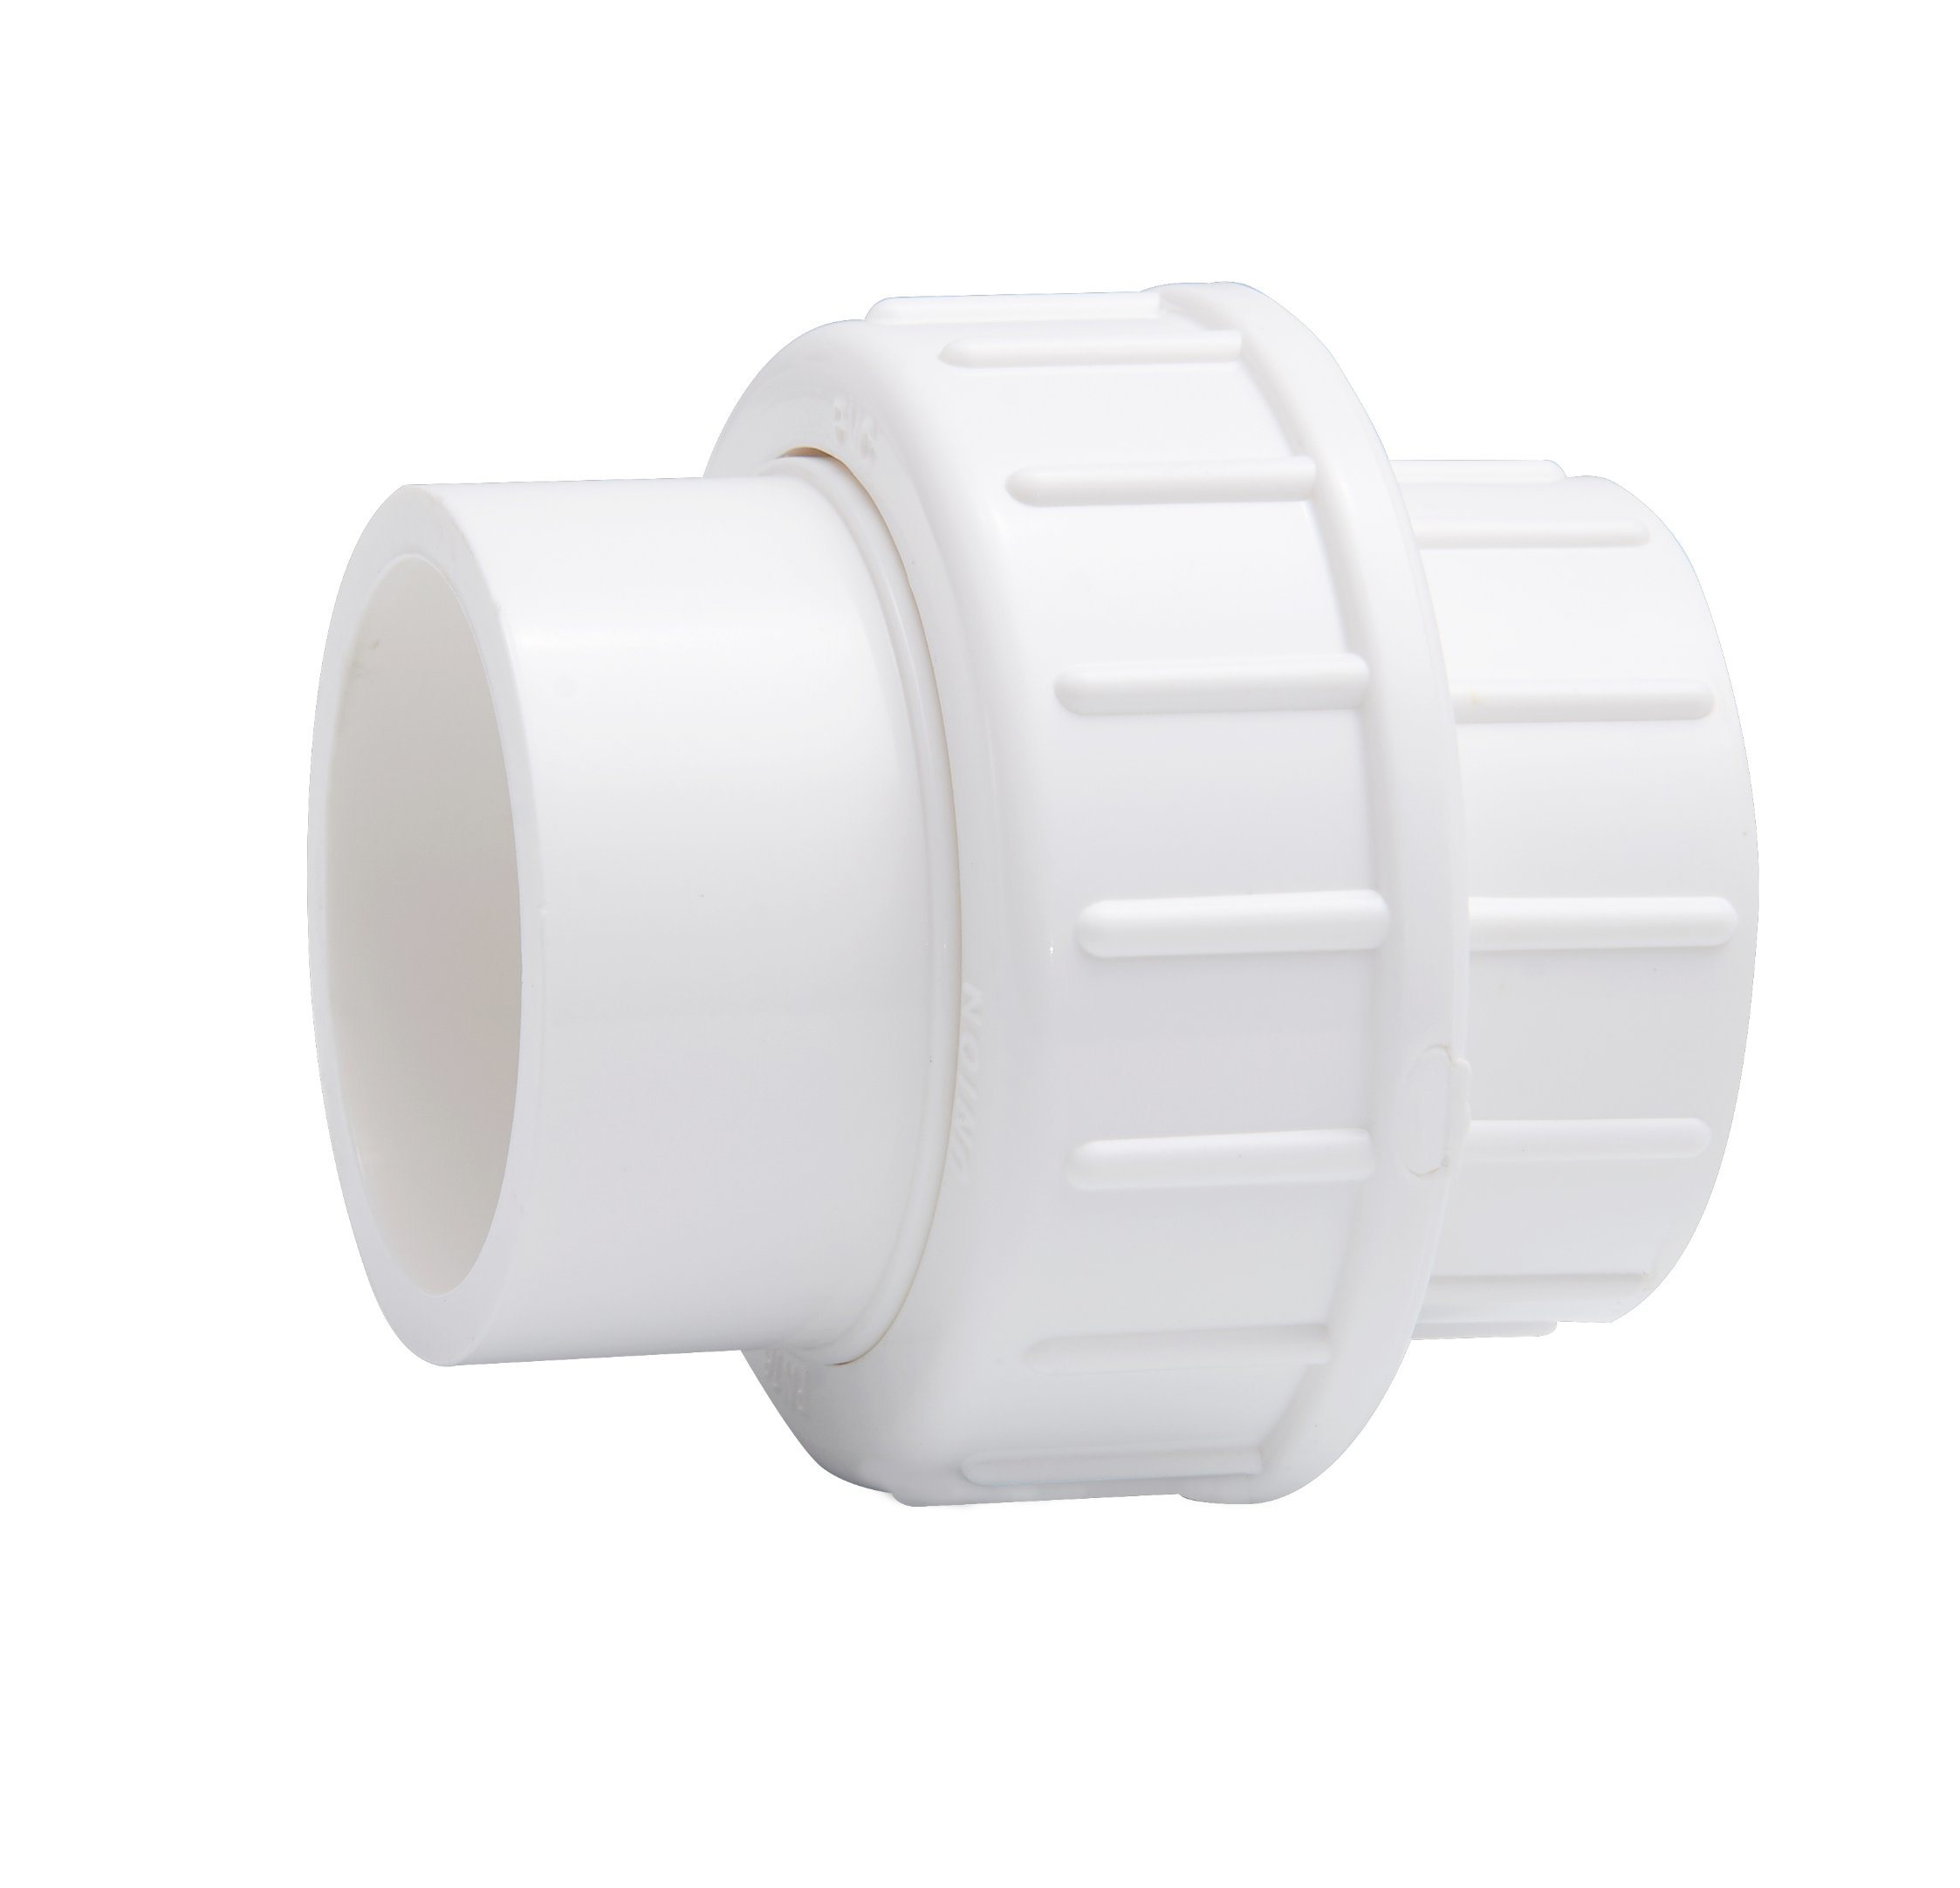 Plastic UPVC PVC Pipe Union/Pipe Fitting/Union Connector/Coupling ASTM Sch White (S*S, BS, ANSI, DIN, JIS Standard)